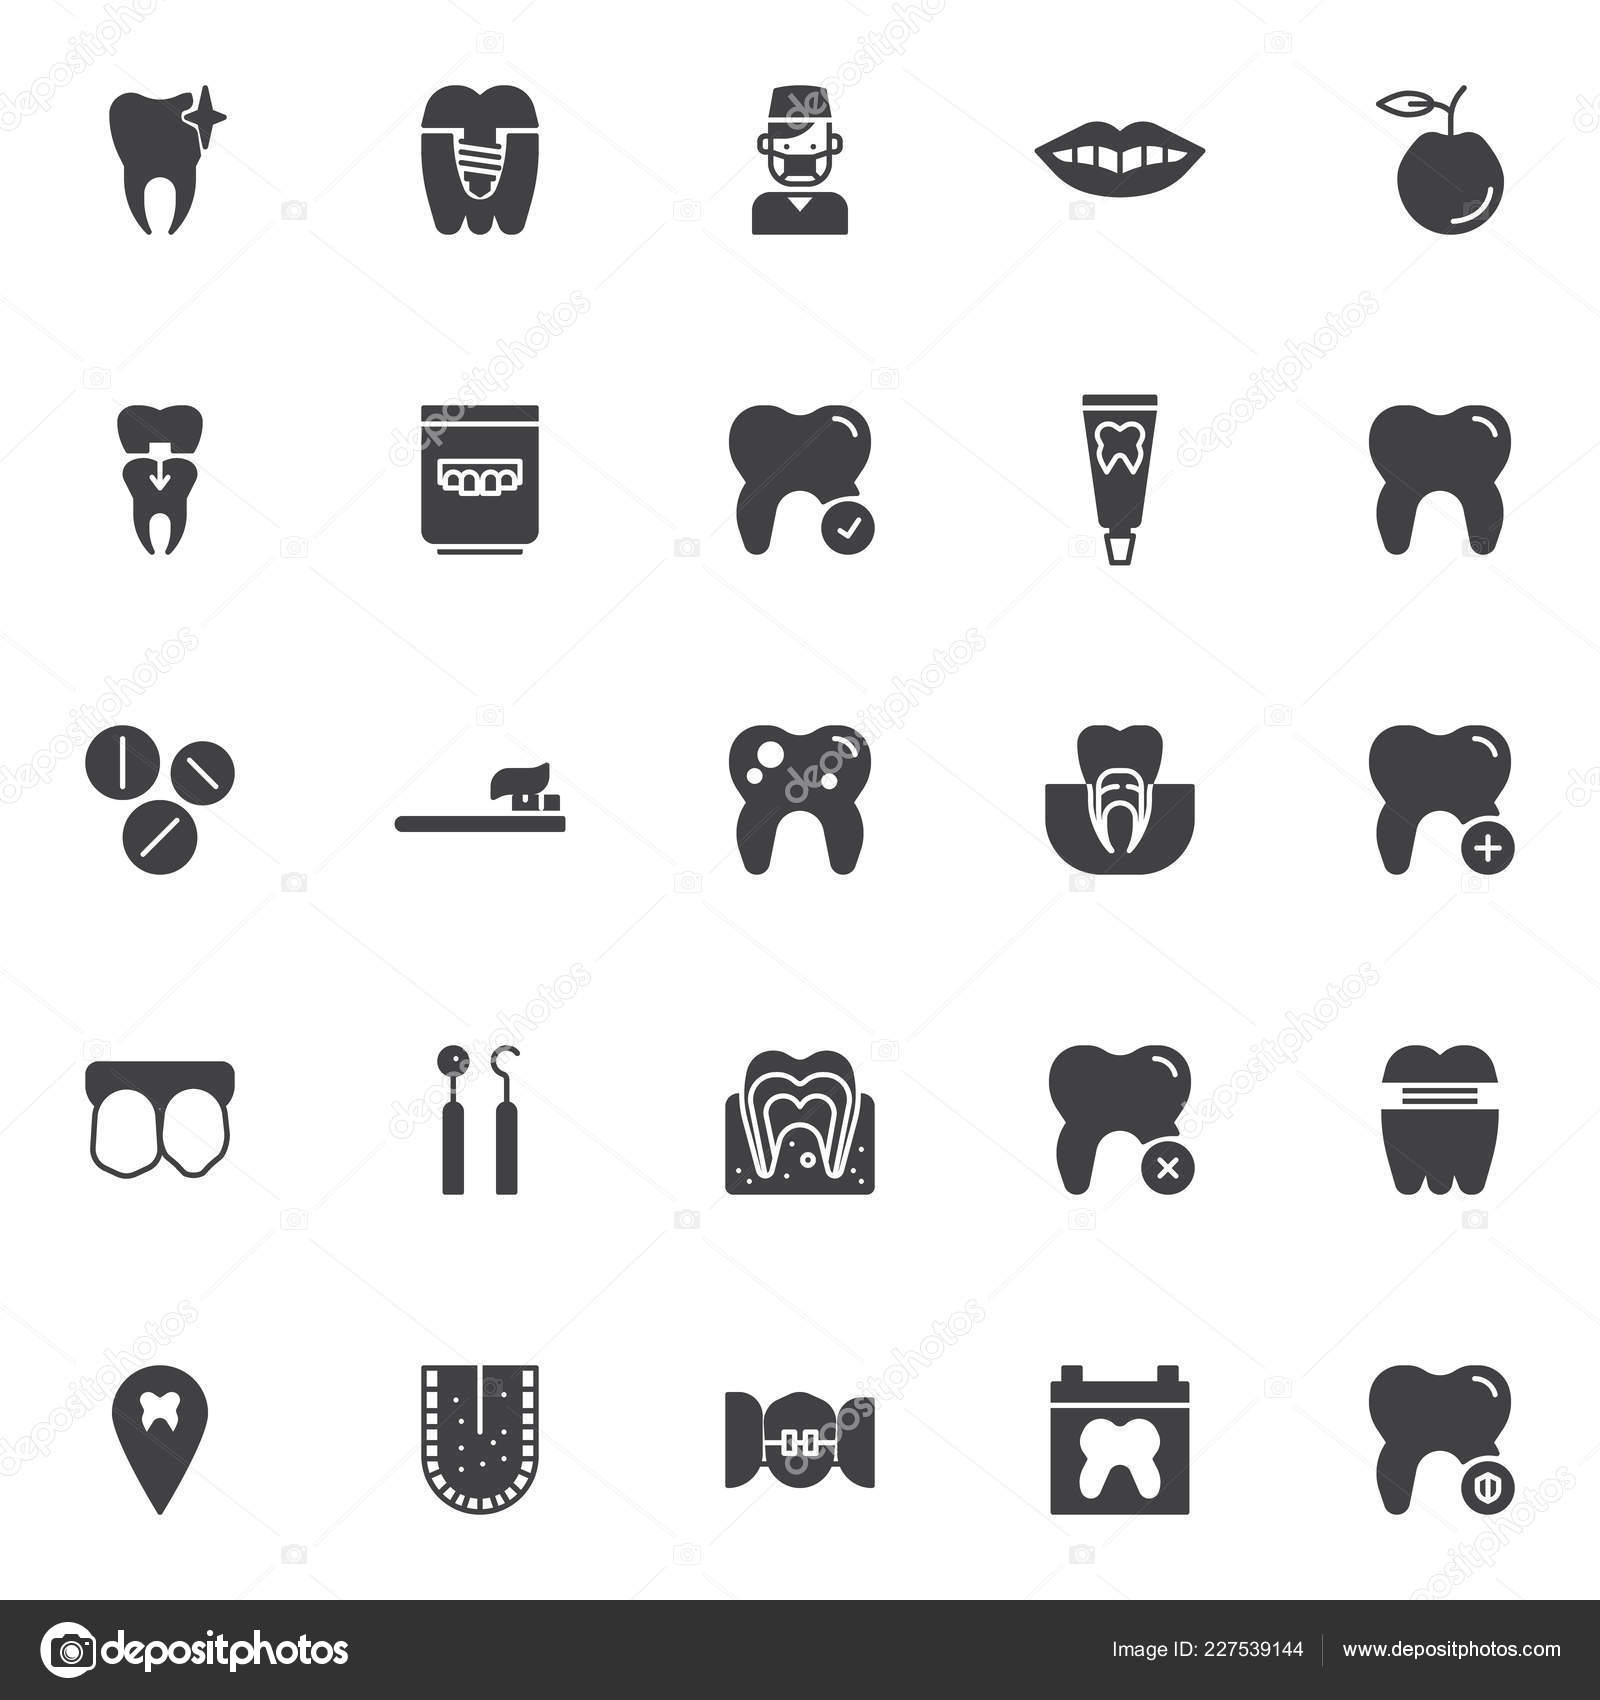 Dental Equipment Vector Icons Set Modern Solid Symbol Collection